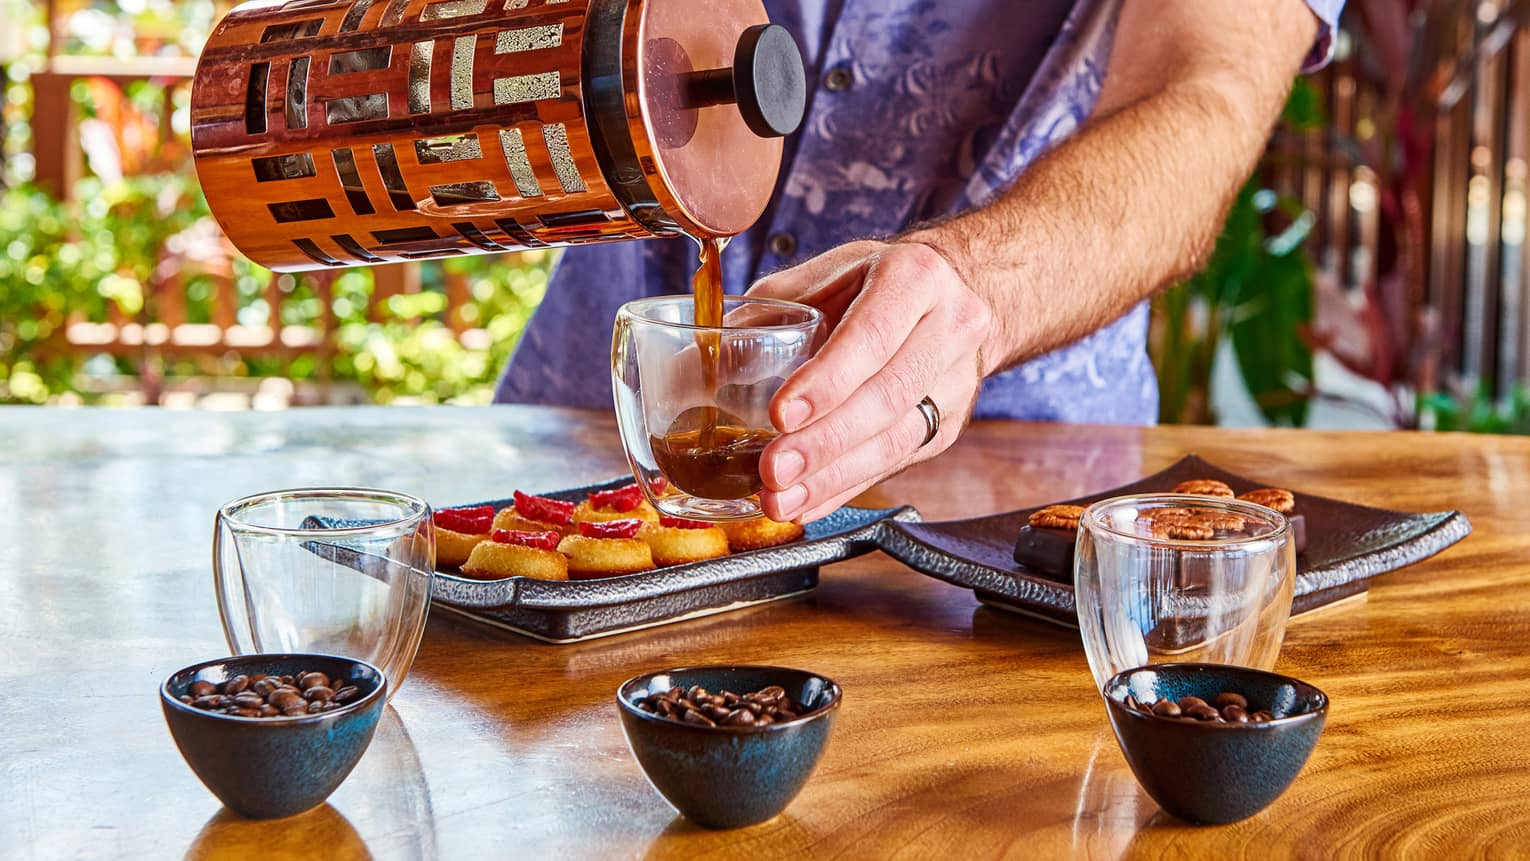 Server pouring coffee from carafe into tasting mugs, desserts on trays, bowls with beans